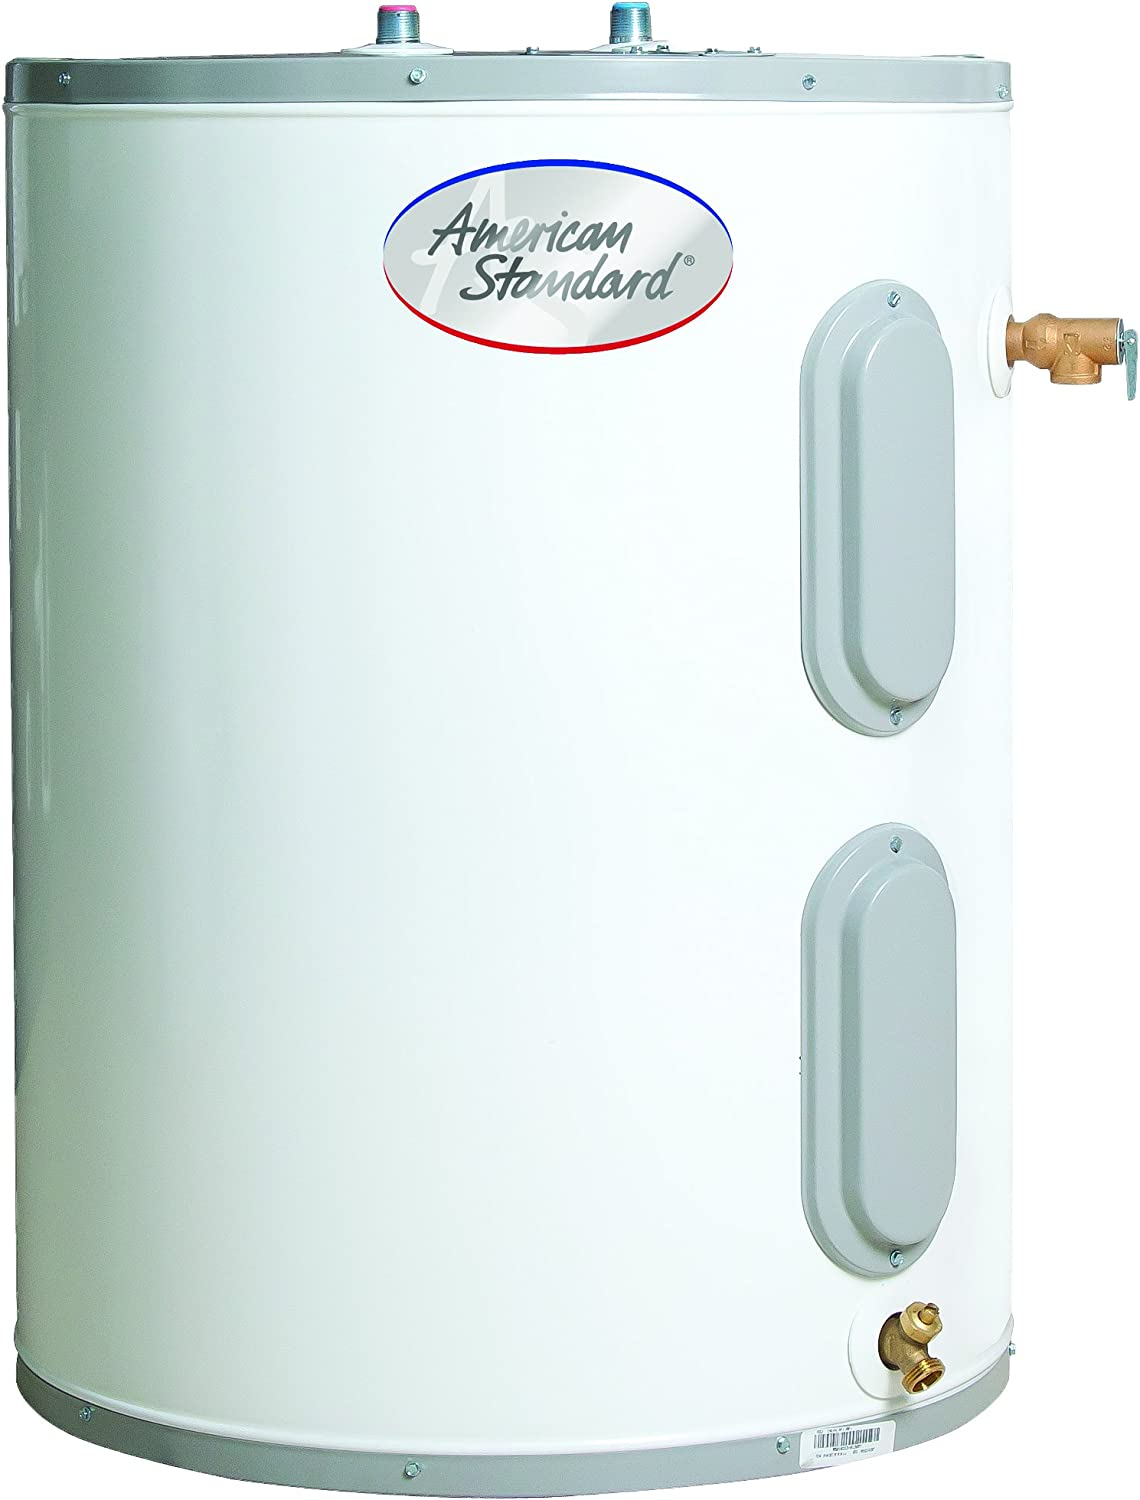 American Standard CE-20-AS 19 Gallon Point Of Use Electric Water Heater